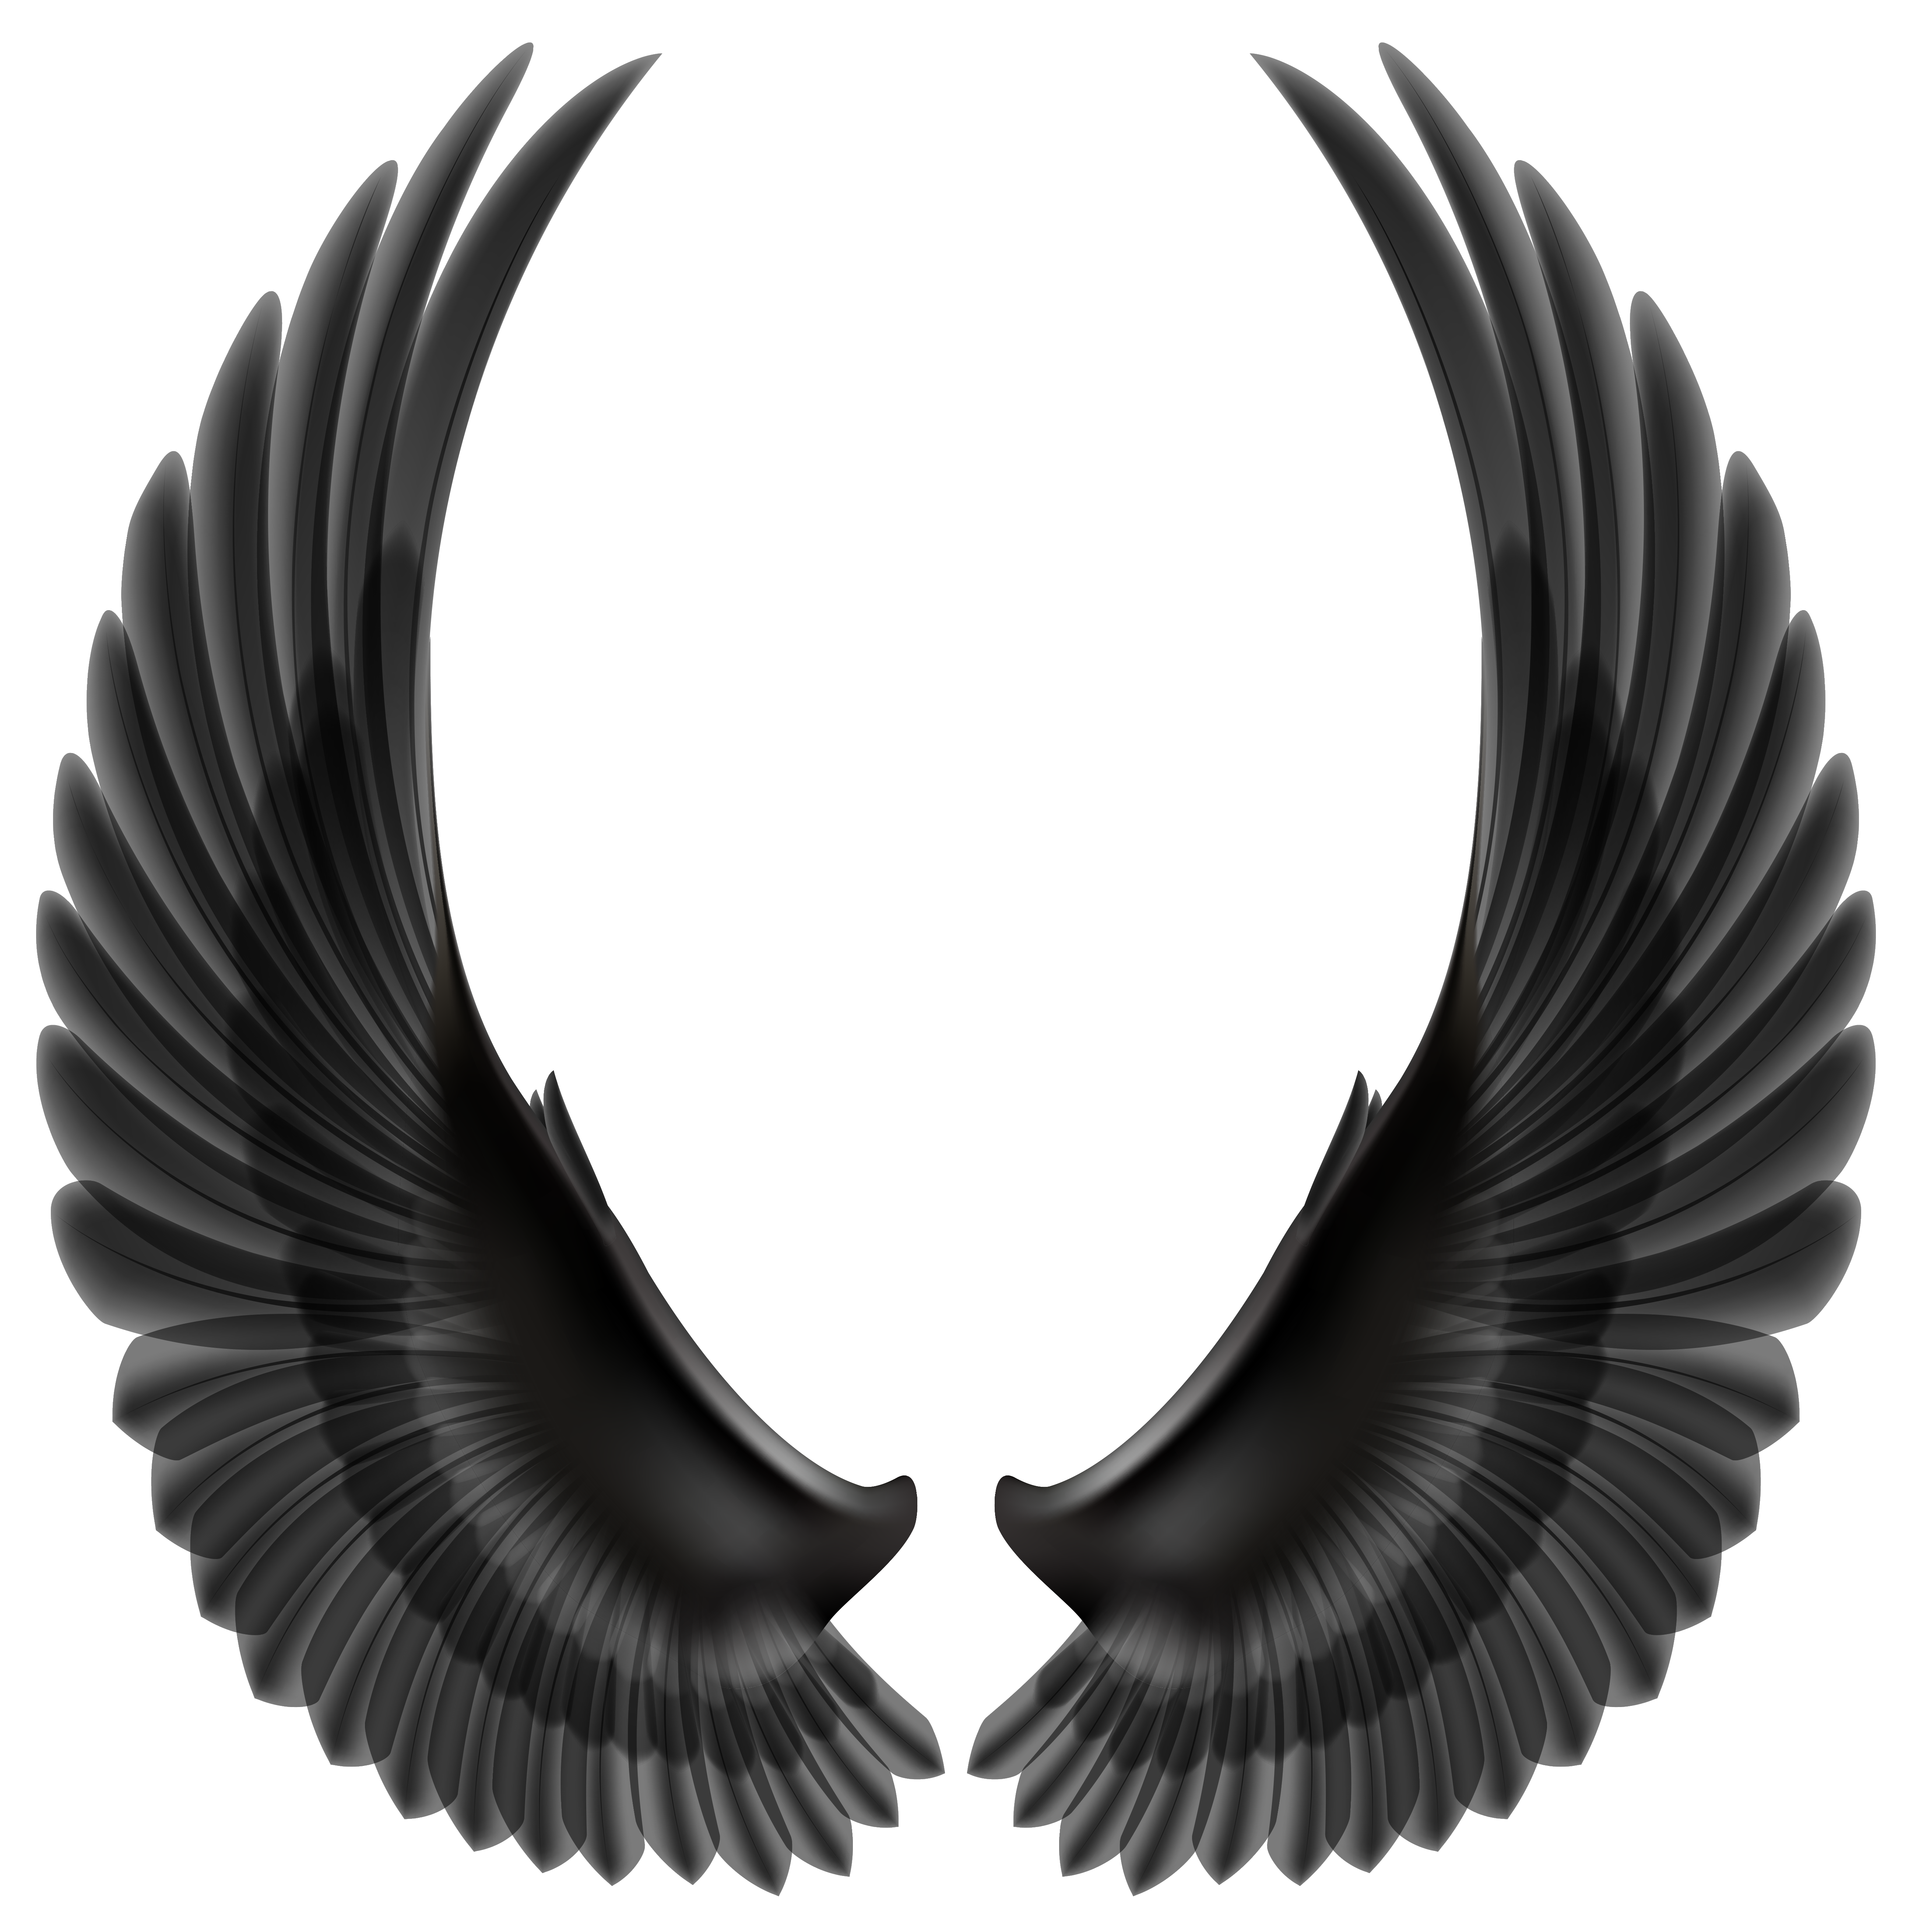 Peace clipart wing Clip silhouette wings angel peace